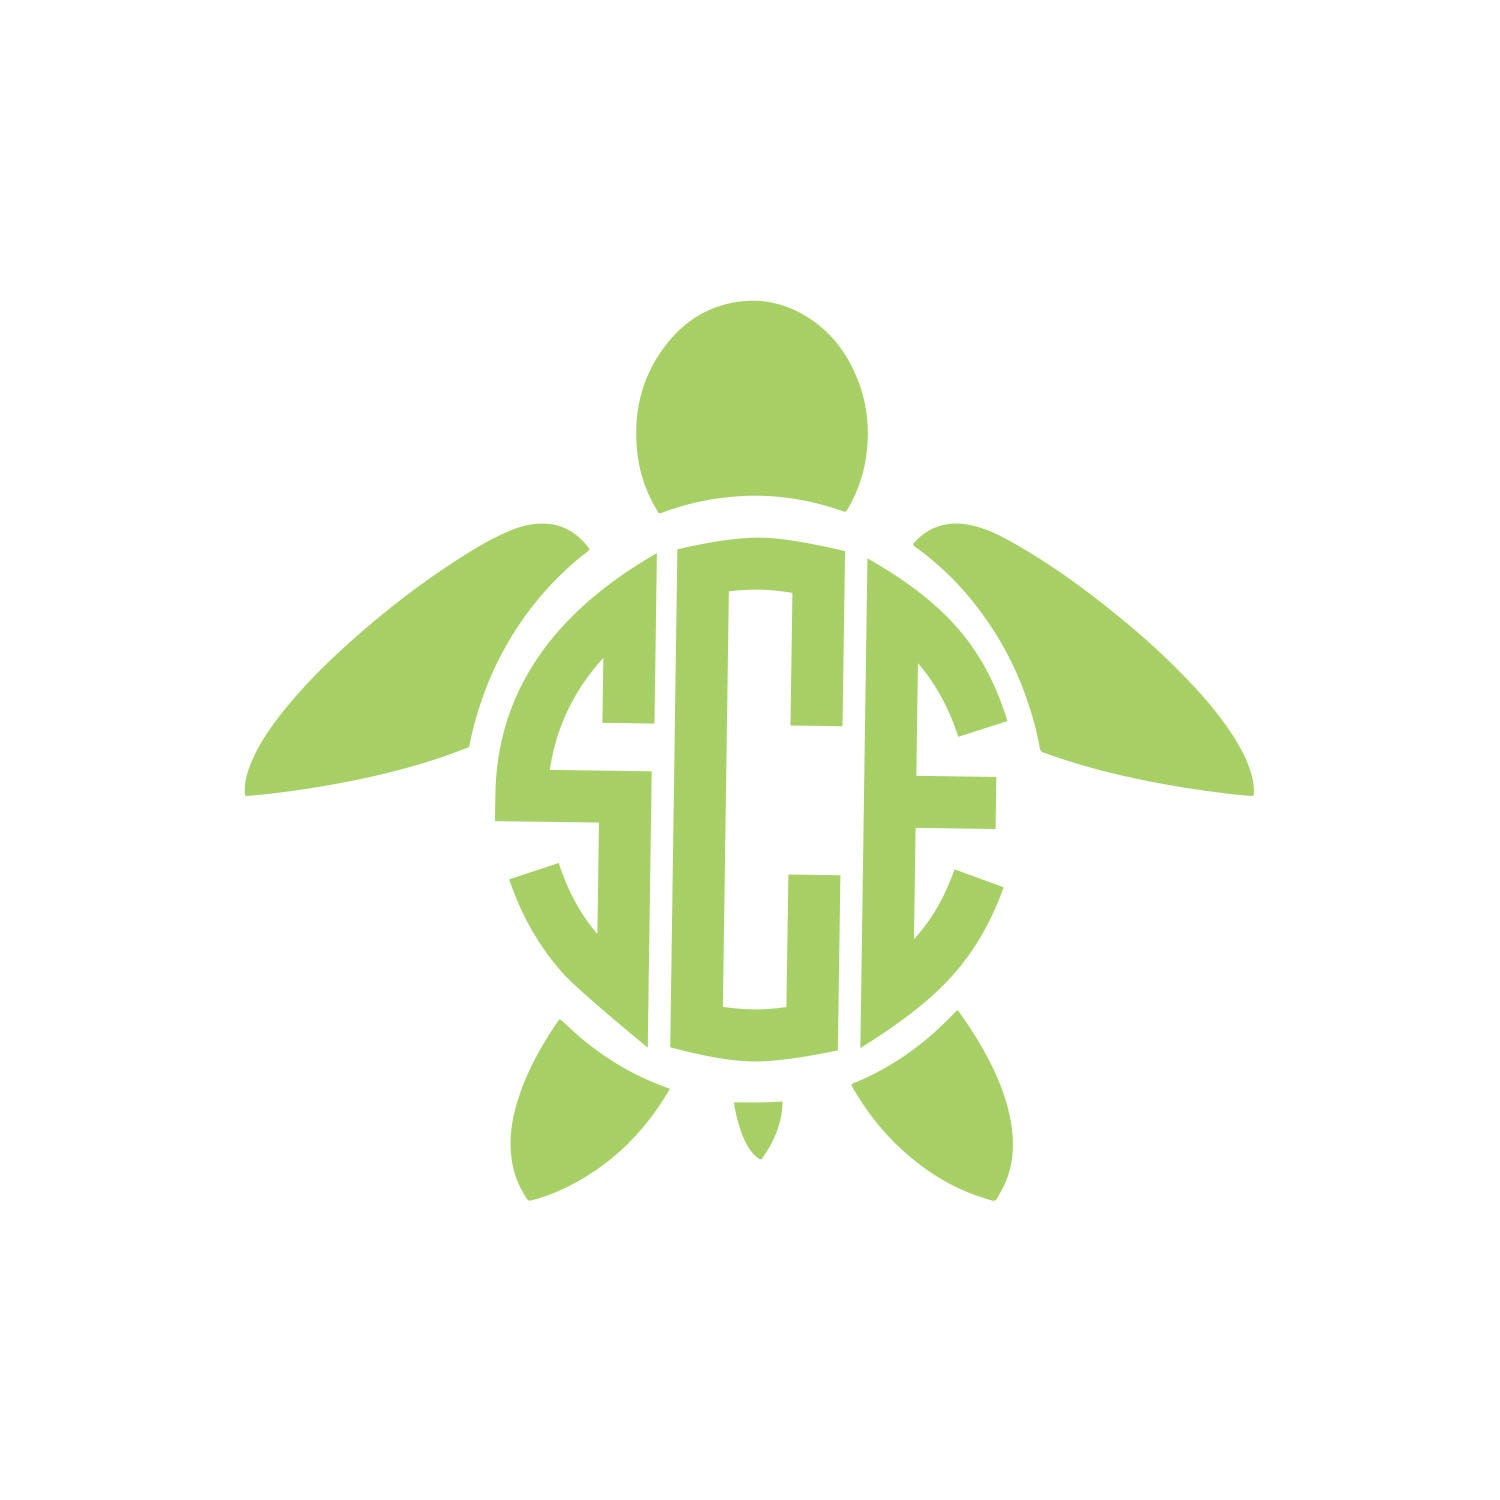 Download Turtle Monogram Vinyl Decal Icon 1 Color Choose from 14